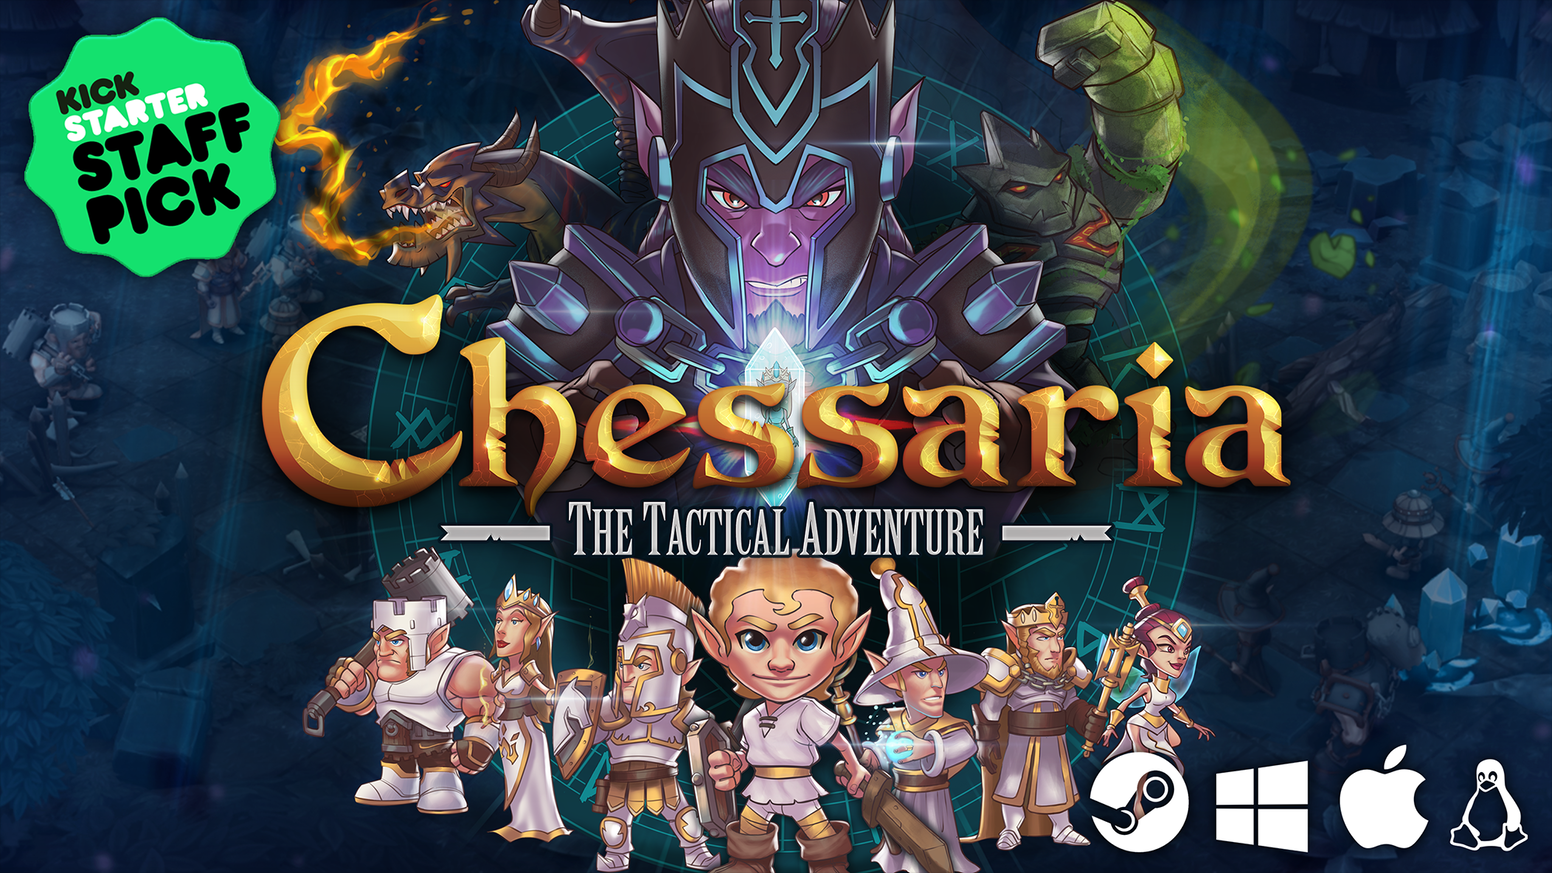 Chessaria: Experience a strategy game with tactical depth, breadth, and challenge like nothing you have played before: an original combination of Chess, tactical setups and story-based missions.